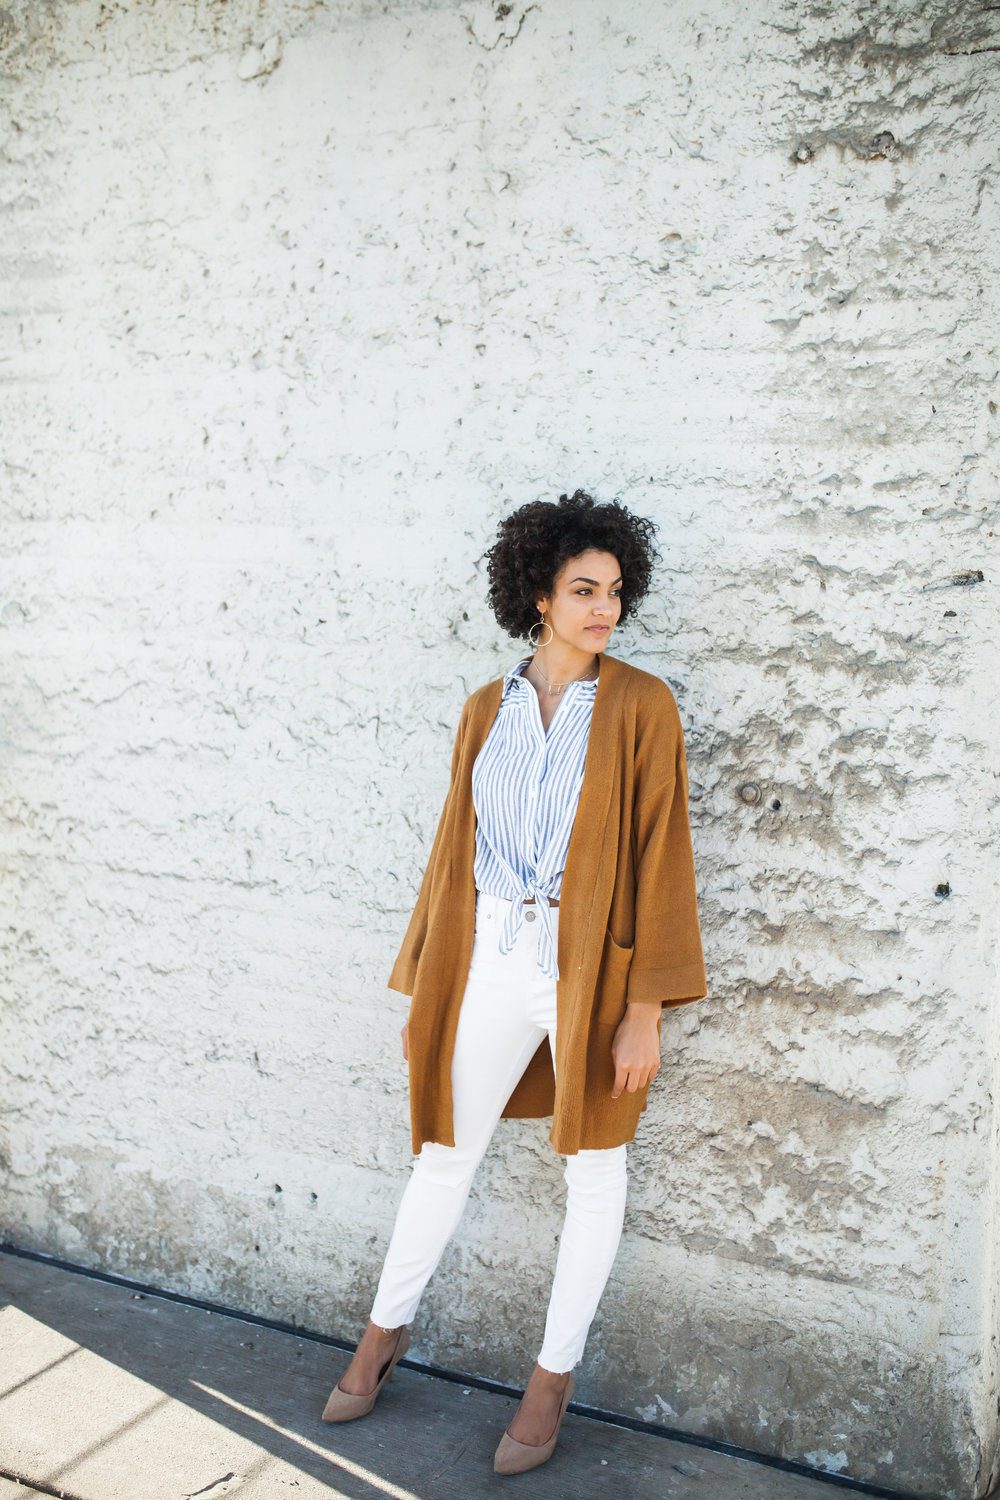 Boutique+Fall.+Outfit.jpg